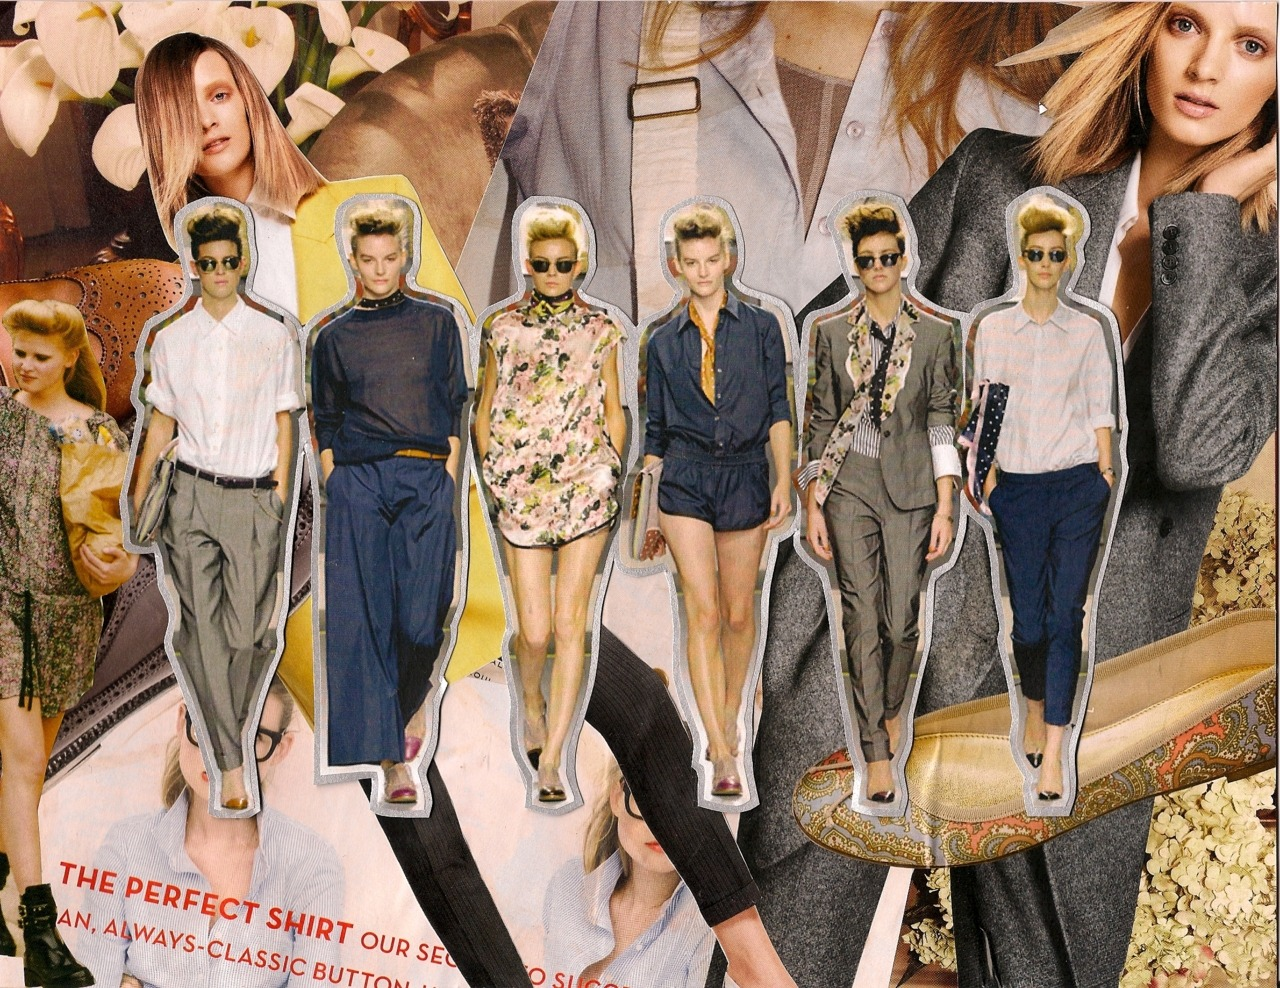 Paul Smith, Spring 2011 This collection reminds me of Duckie from Pretty in Pink, in the best way possible.